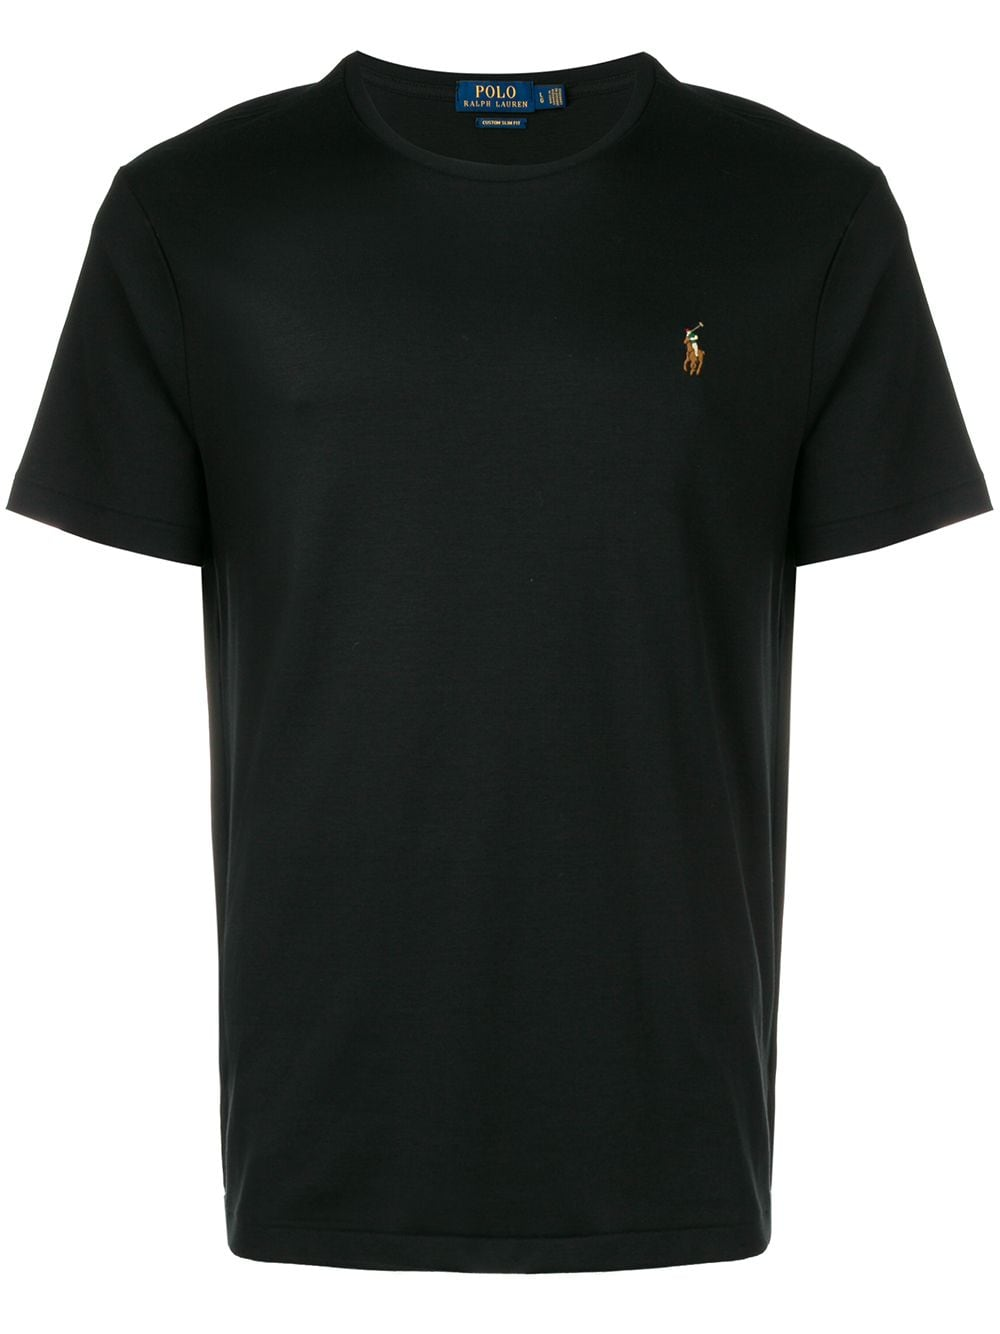 Polo Ralph Lauren logo T-shirt - Black von Polo Ralph Lauren